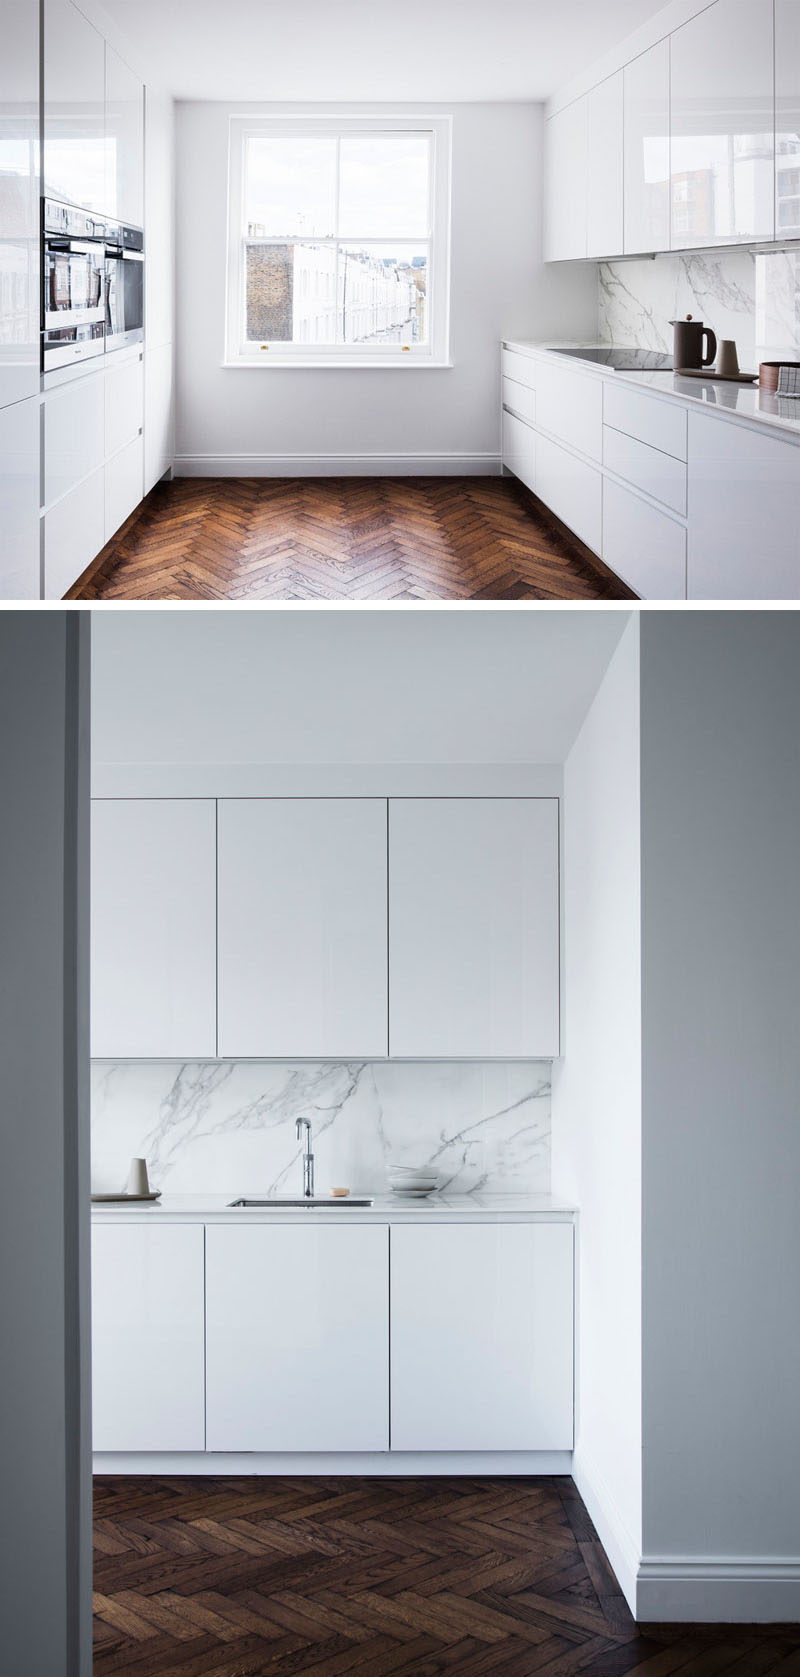 Flooring Ideas - Throughout this renovated house, herringbone oak timber flooring was specified as it would've been the original flooring. The designers distressed/damaged the floor and used 'old English' stain to give a 200 years old look.  The flooring also contrasts the bright walls and the glossy white minimalist cabinets in the kitchen.#FlooringIdeas #WoodFlooring #DarkFlooring #WhiteKitchen